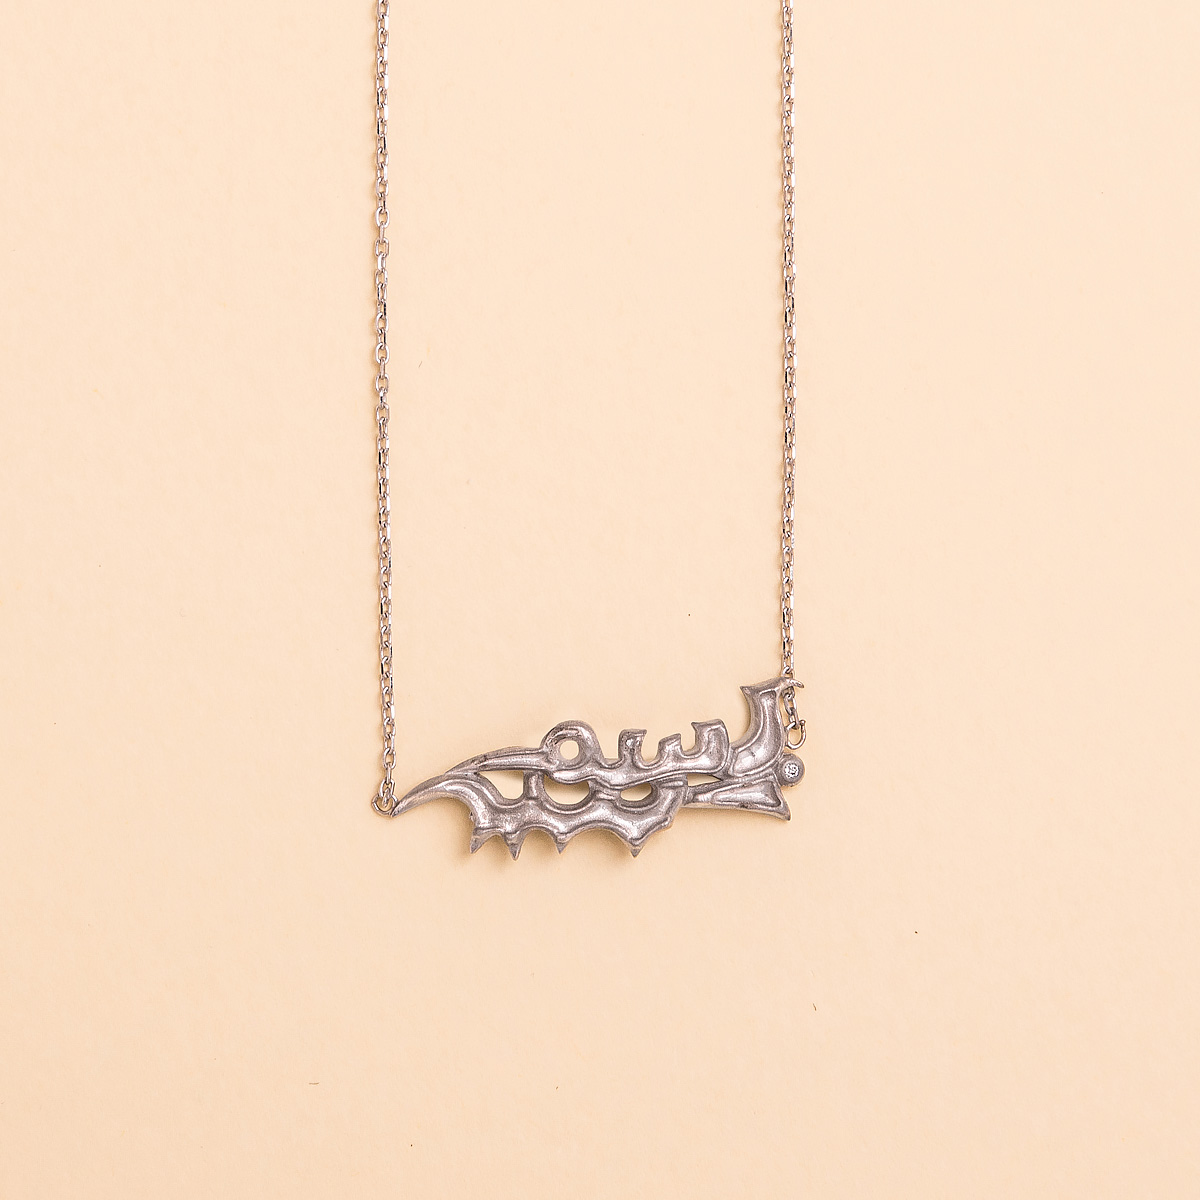 Bism Allah – white gold bracelet embodying the words that call upon GodWhite gold